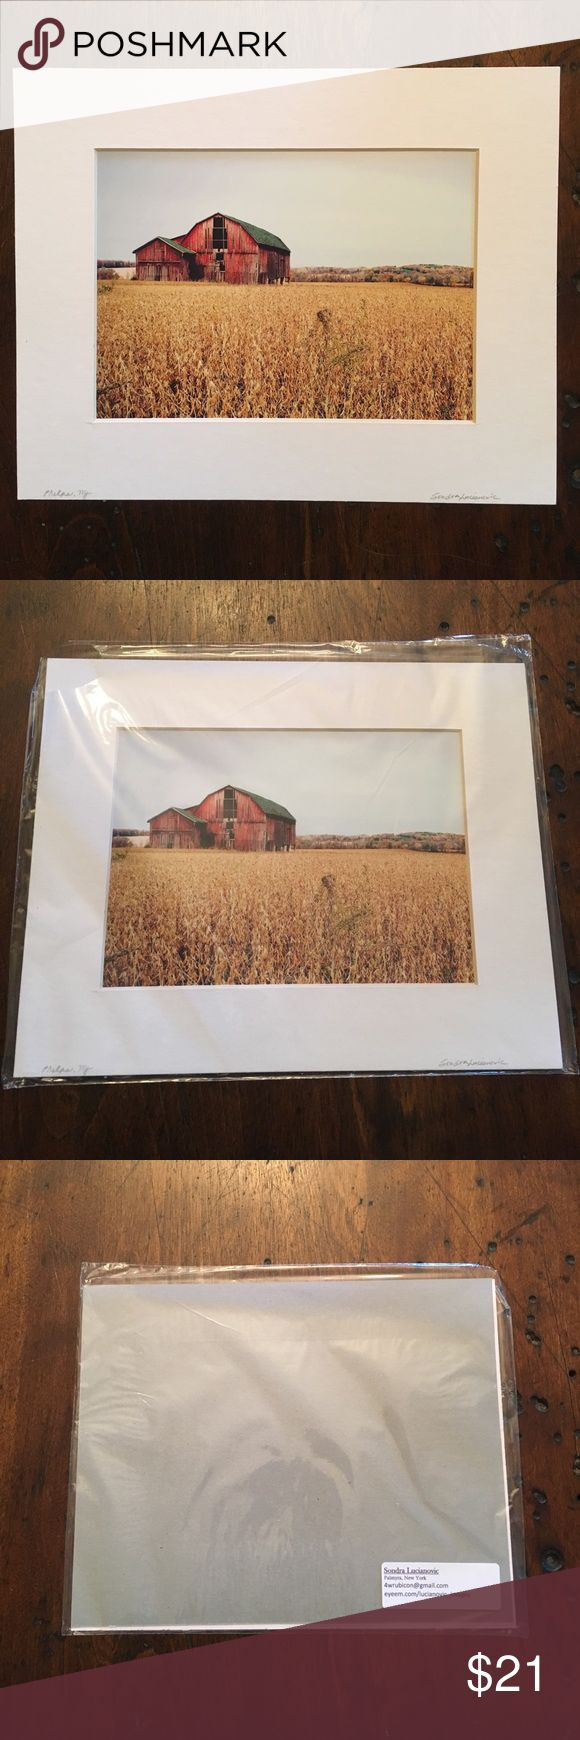 8x10 mounted photograph Local barns of the Finger Lakes region in NY. All works are original and taken by me. White matte board frames out this photograph depicting an old barn in Phelps NY. 8x10. Signed. Other